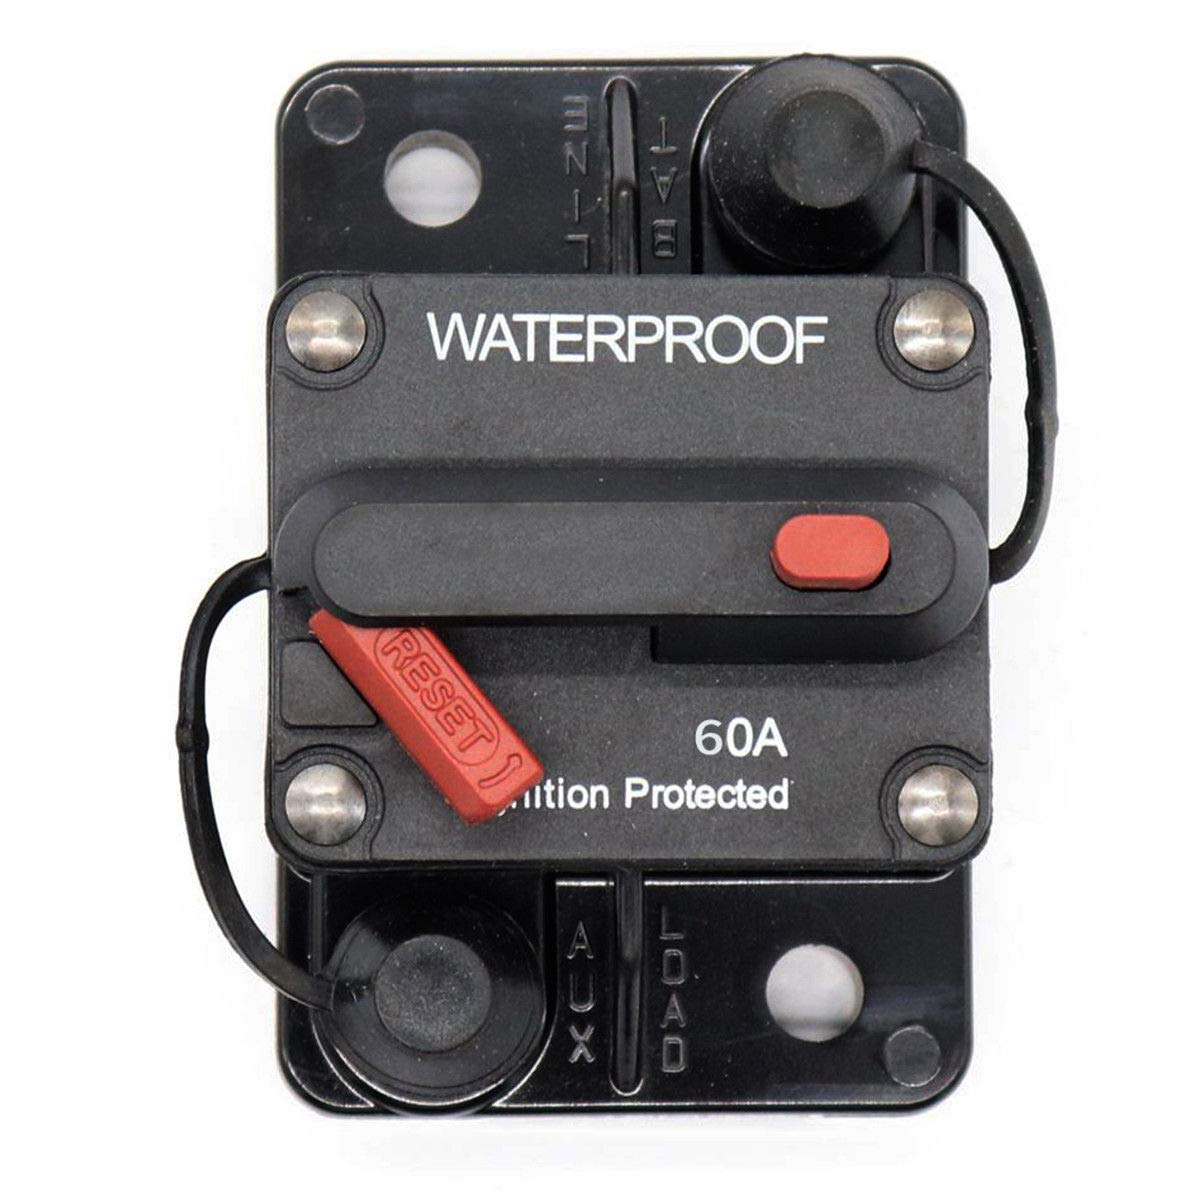 GZLMMY Waterproof Circuit Breaker Surge Protector with Manual Reset Button 12V- 72V DC Fuse Inverter for Car RV Marine Boat (60A)